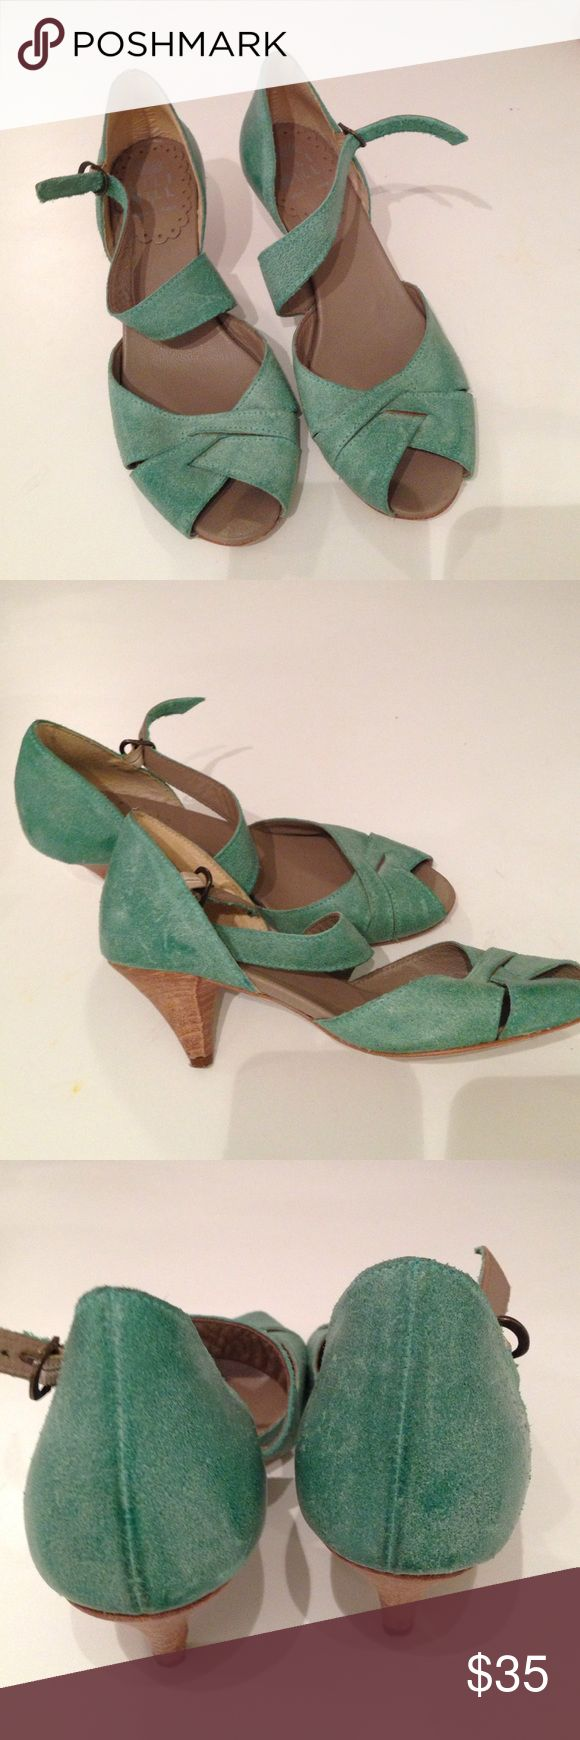 ITALIAN MADE LILLIMILL BLUE-GREEN SANDALS Made in Italy. .. Wooden heels..pretty blue-green sandals. They are 100% Leather.. and it's made to have a slightly speckled finish. In great condition. LILLIMILL Shoes